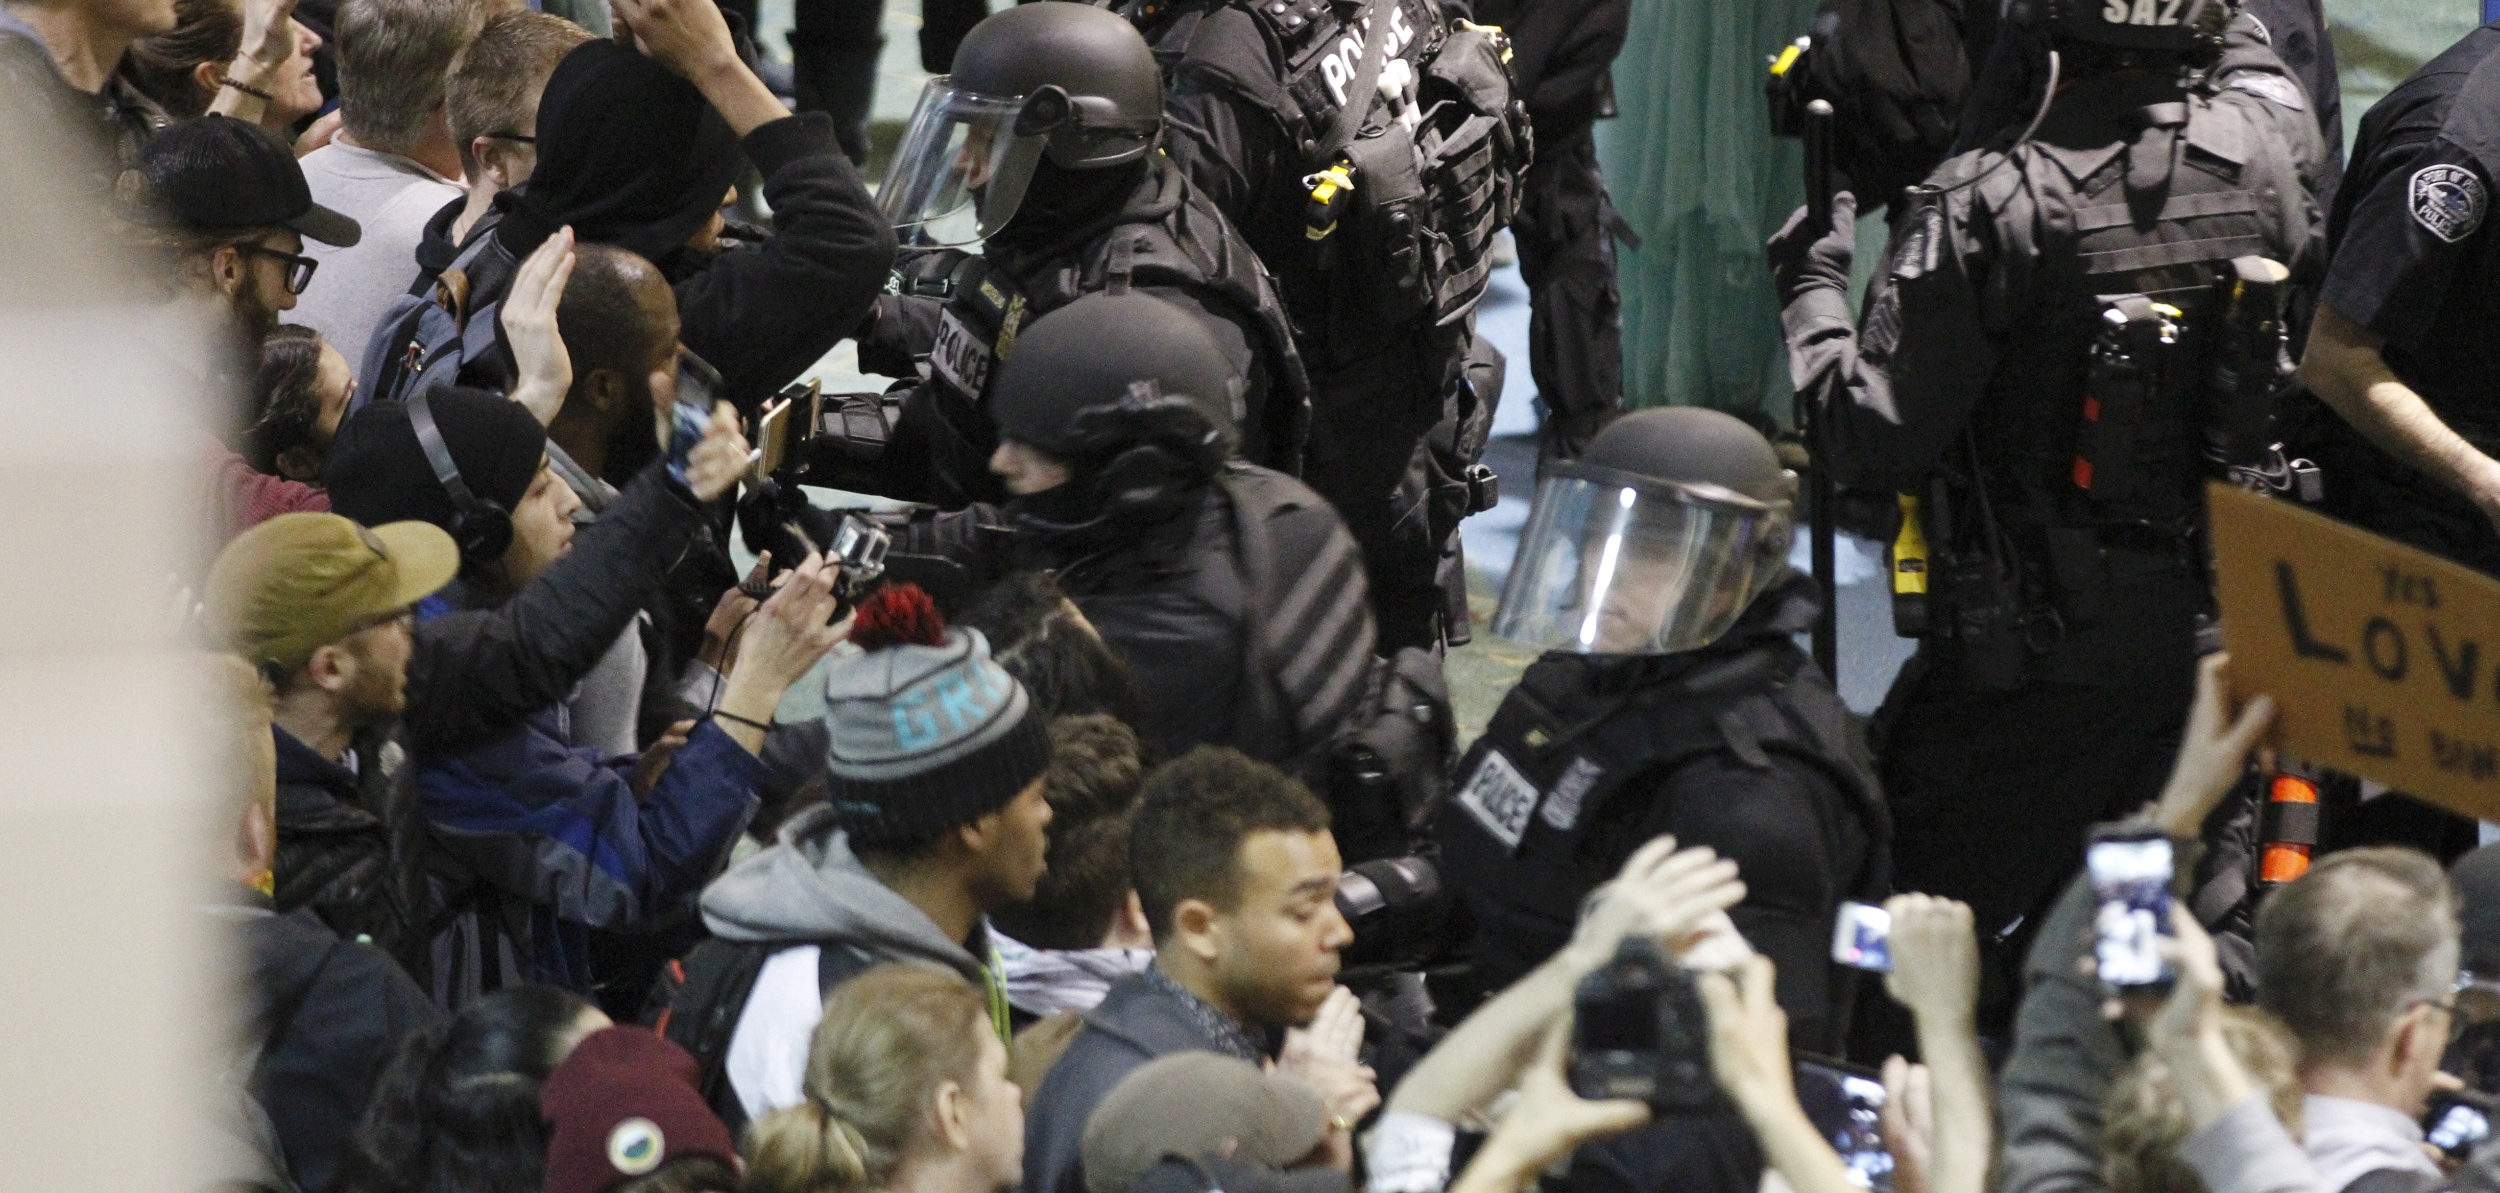 Riot police push activists gathered at Portland International Airport to protest against President Donald Trump's executive action travel ban in Portland, Oregon, U.S. January 29, 2017. REUTERS/Steve Dipaola